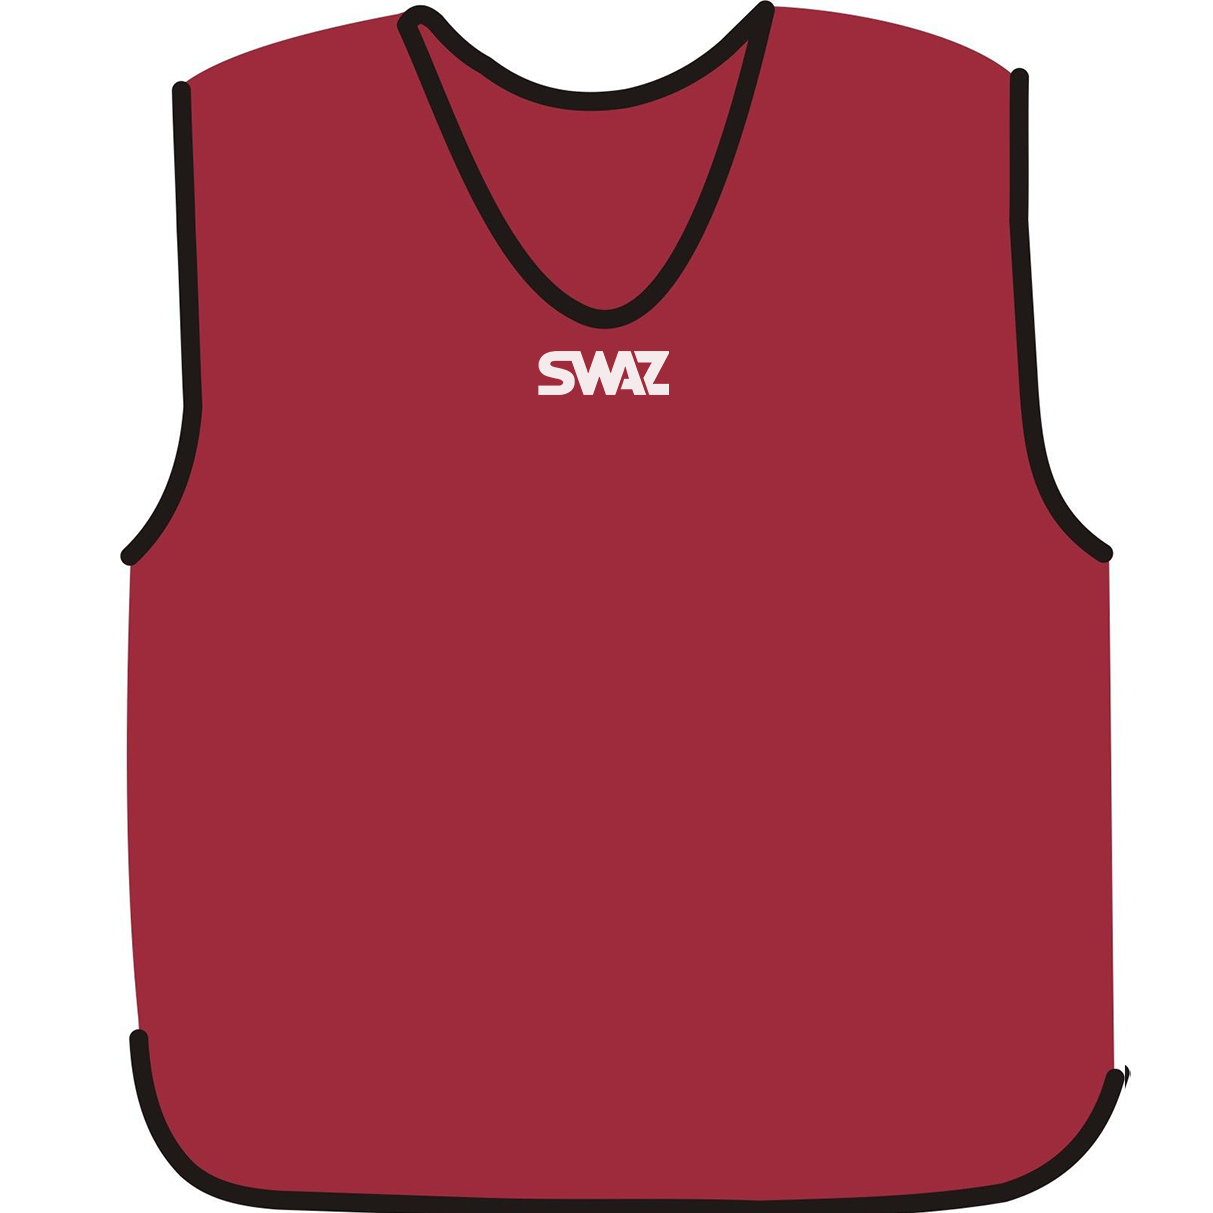 15 SWAZ Training Bibs – Cherry